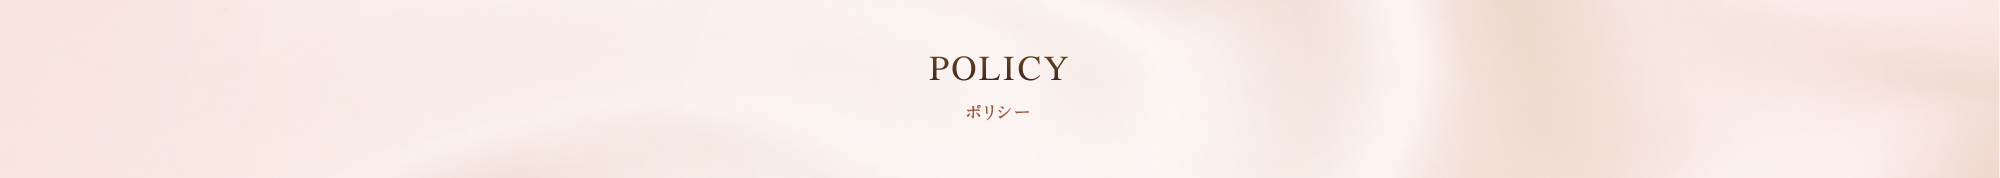 POLICY ポリシー